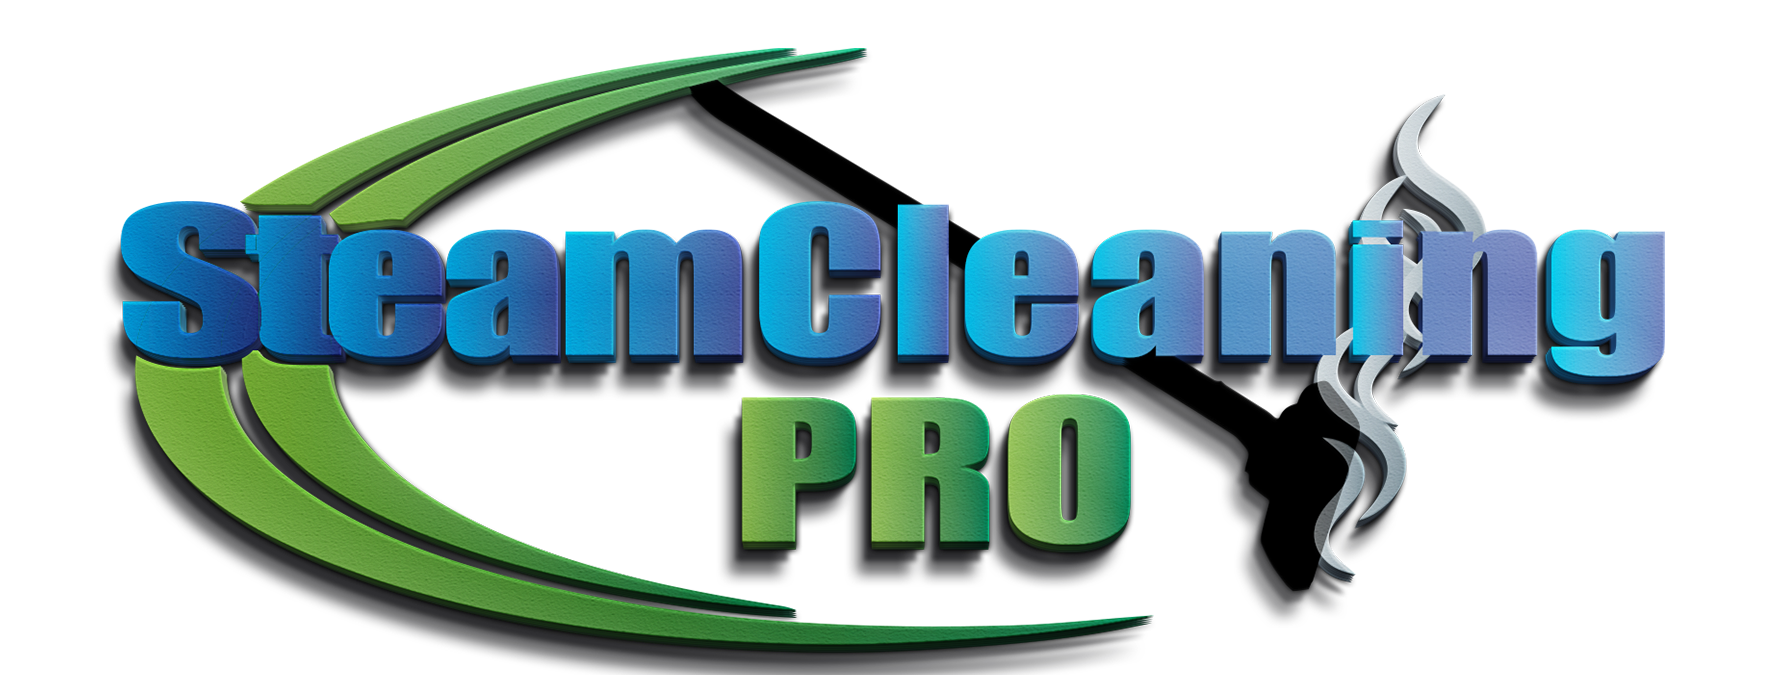 Carpet Cleaning Service, Fast and Affordable